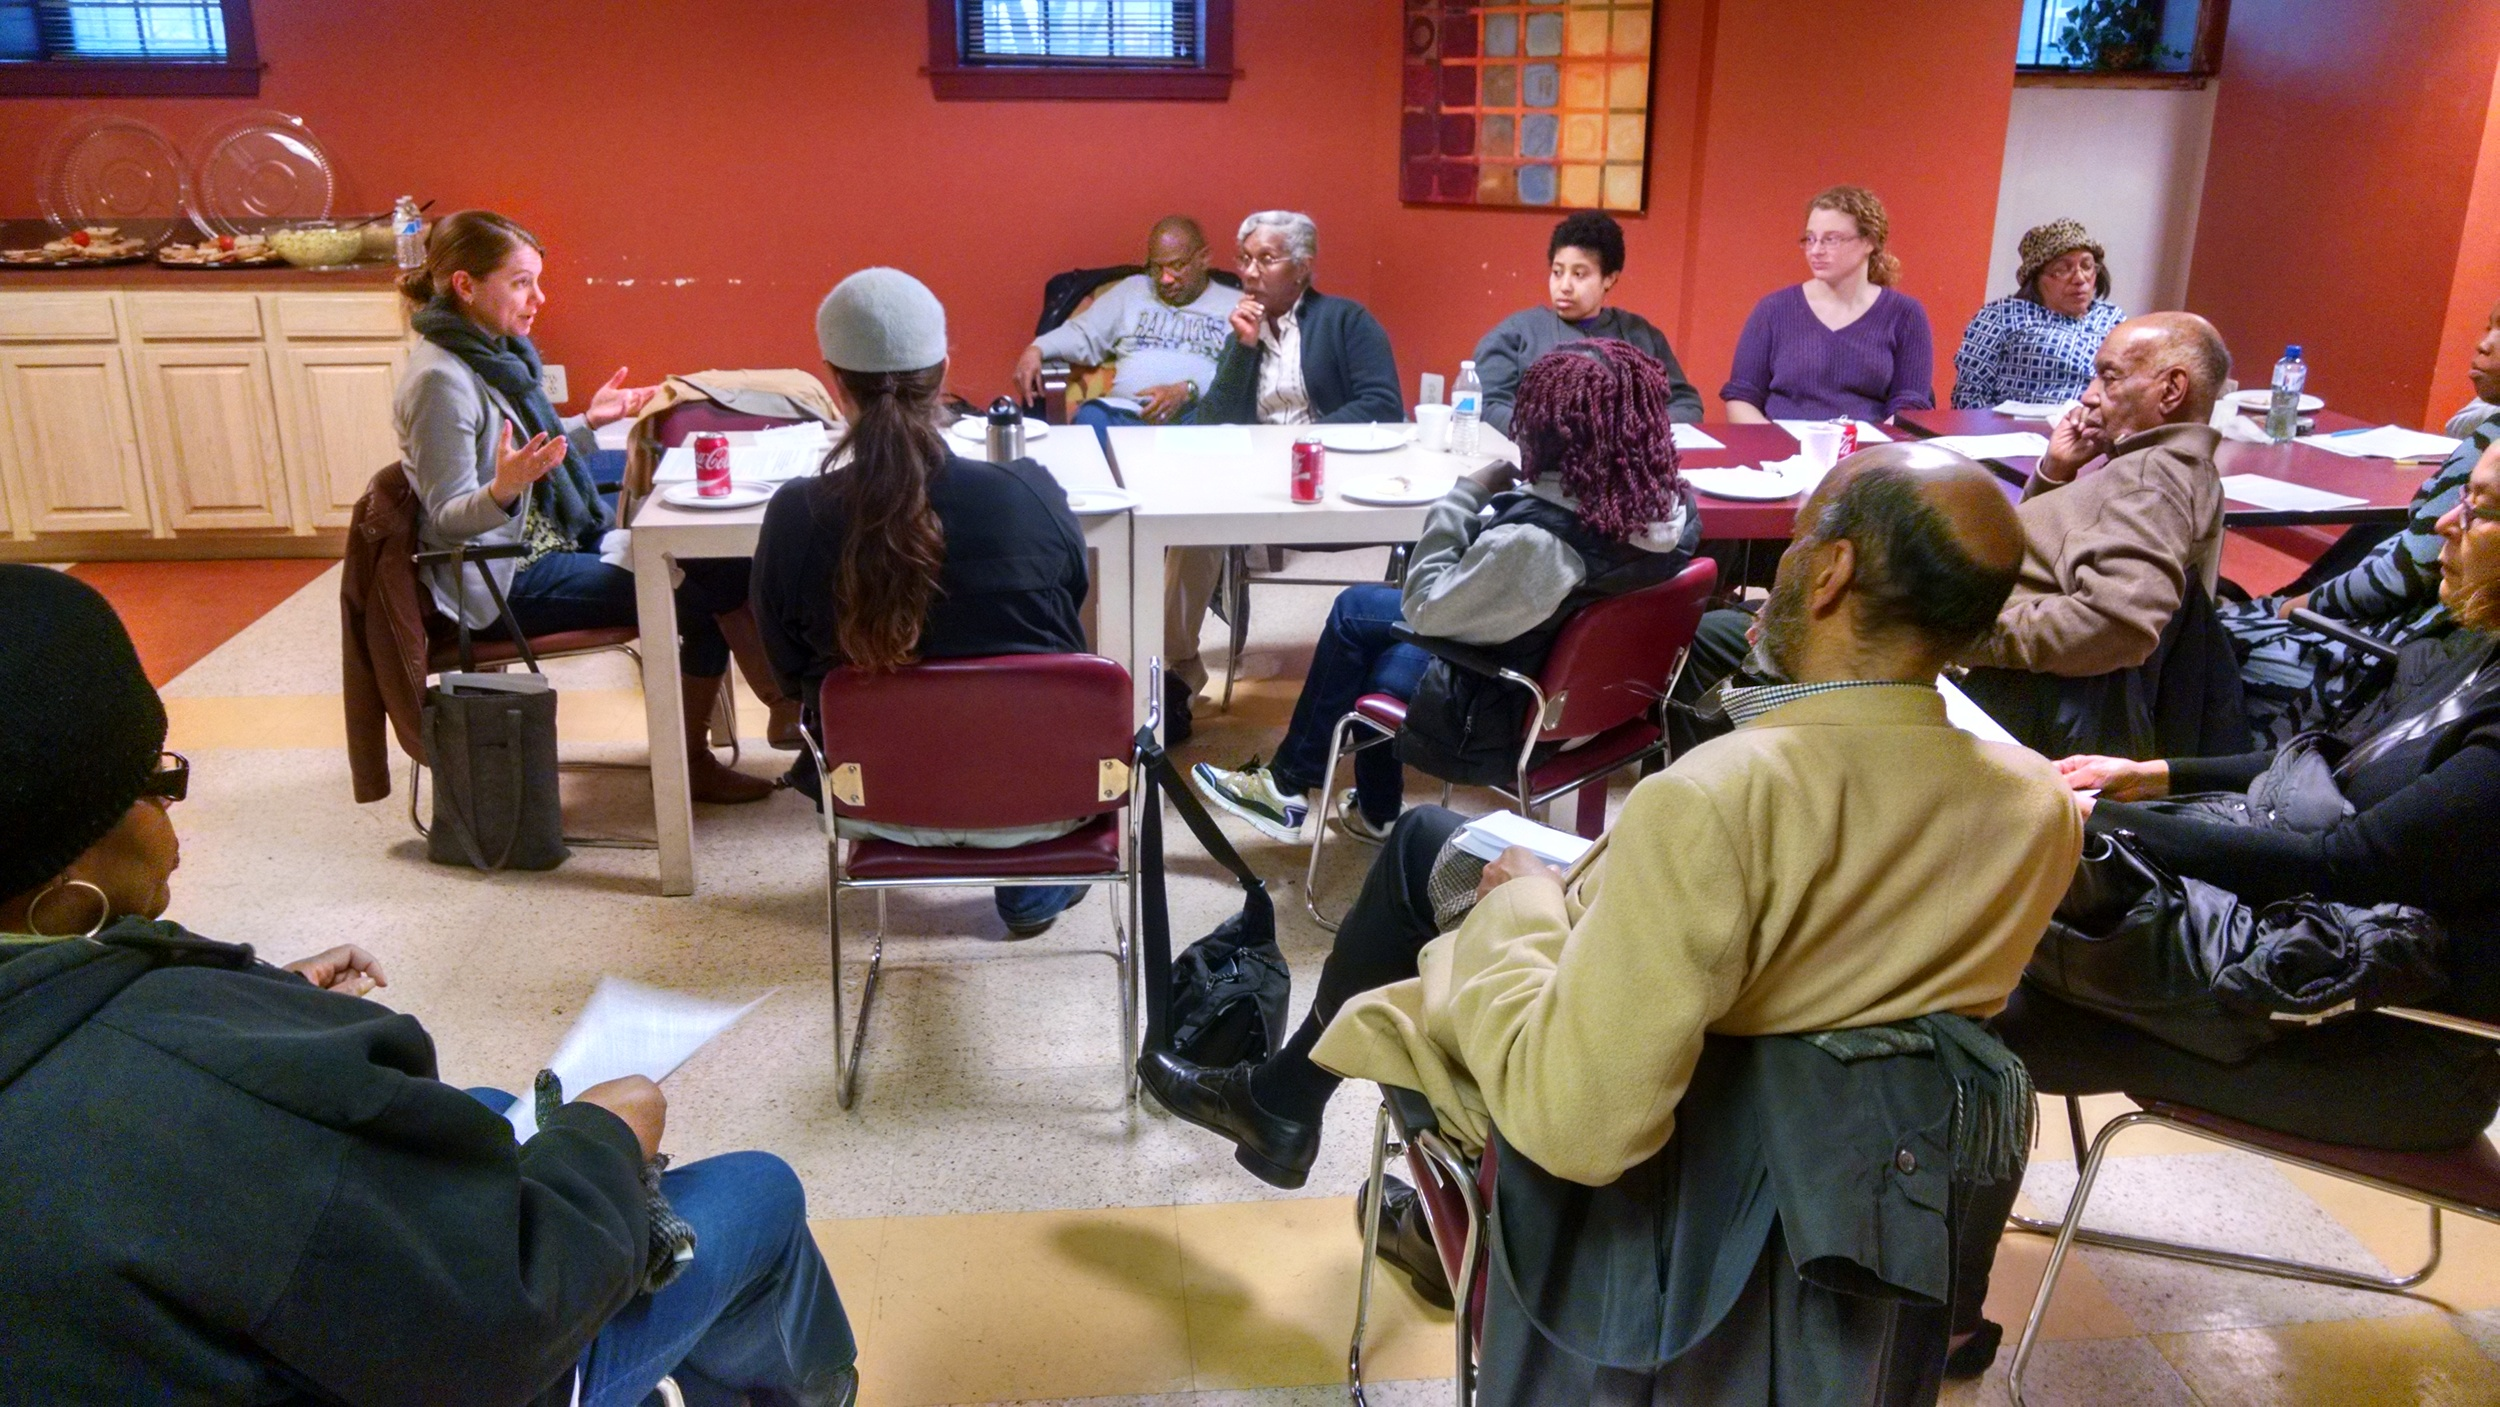 Lakeside area residents in Reservoir Hill discuss the West North Avenue Streetscape recommendations with Laura Bowe Wheaton from Neighborhood Design Center